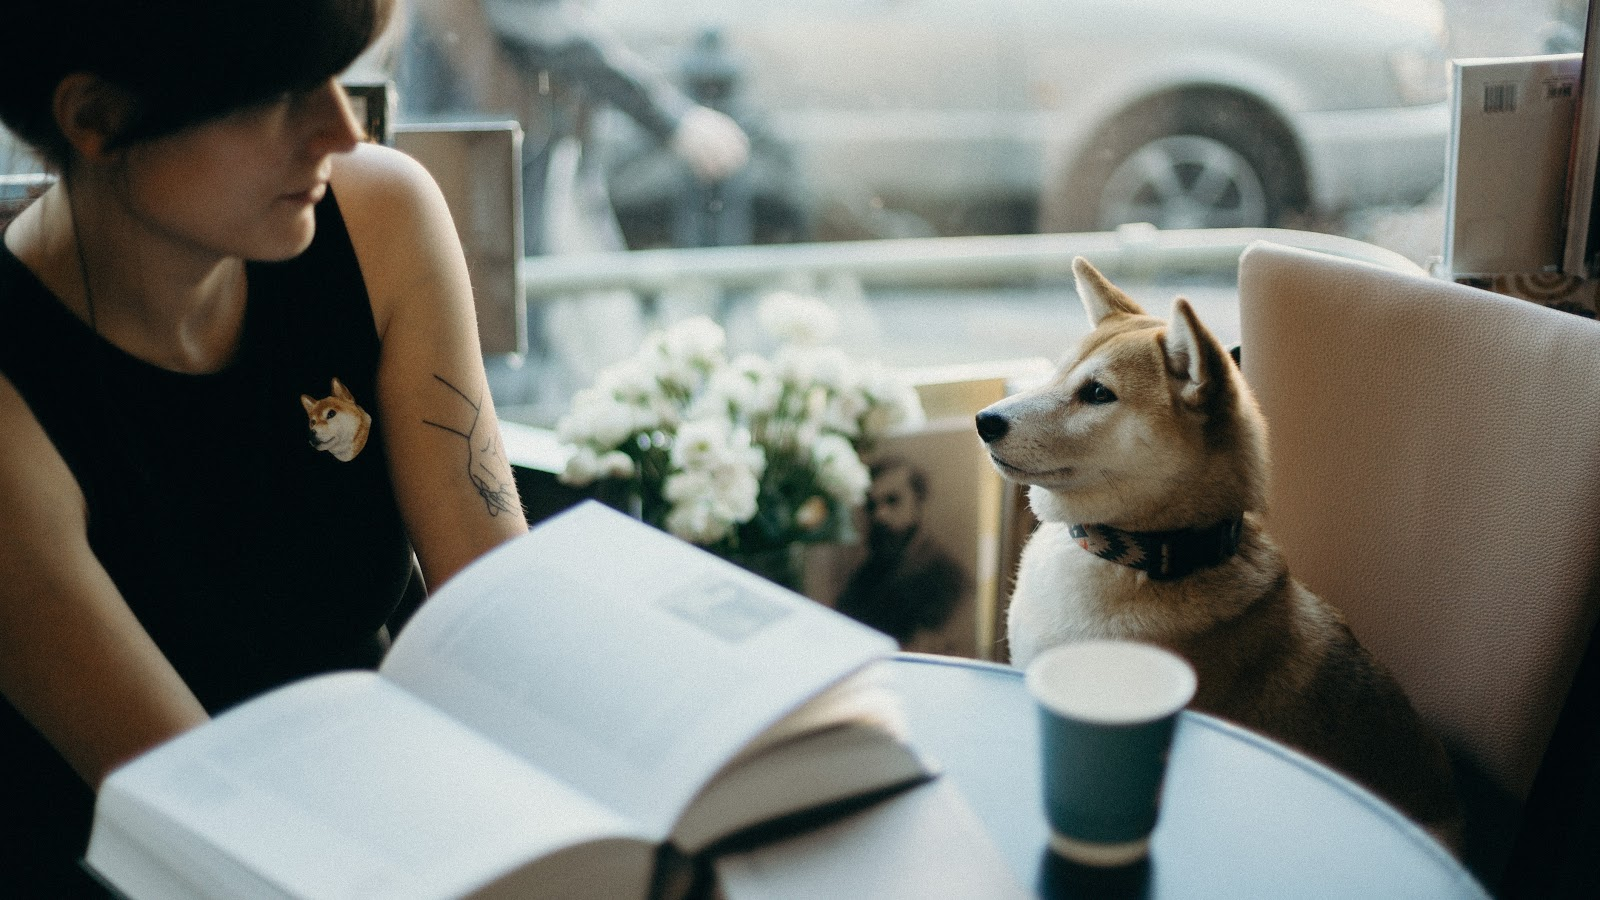 a woman reading a book gazes over to a shiba inu sitting in the chair next to her